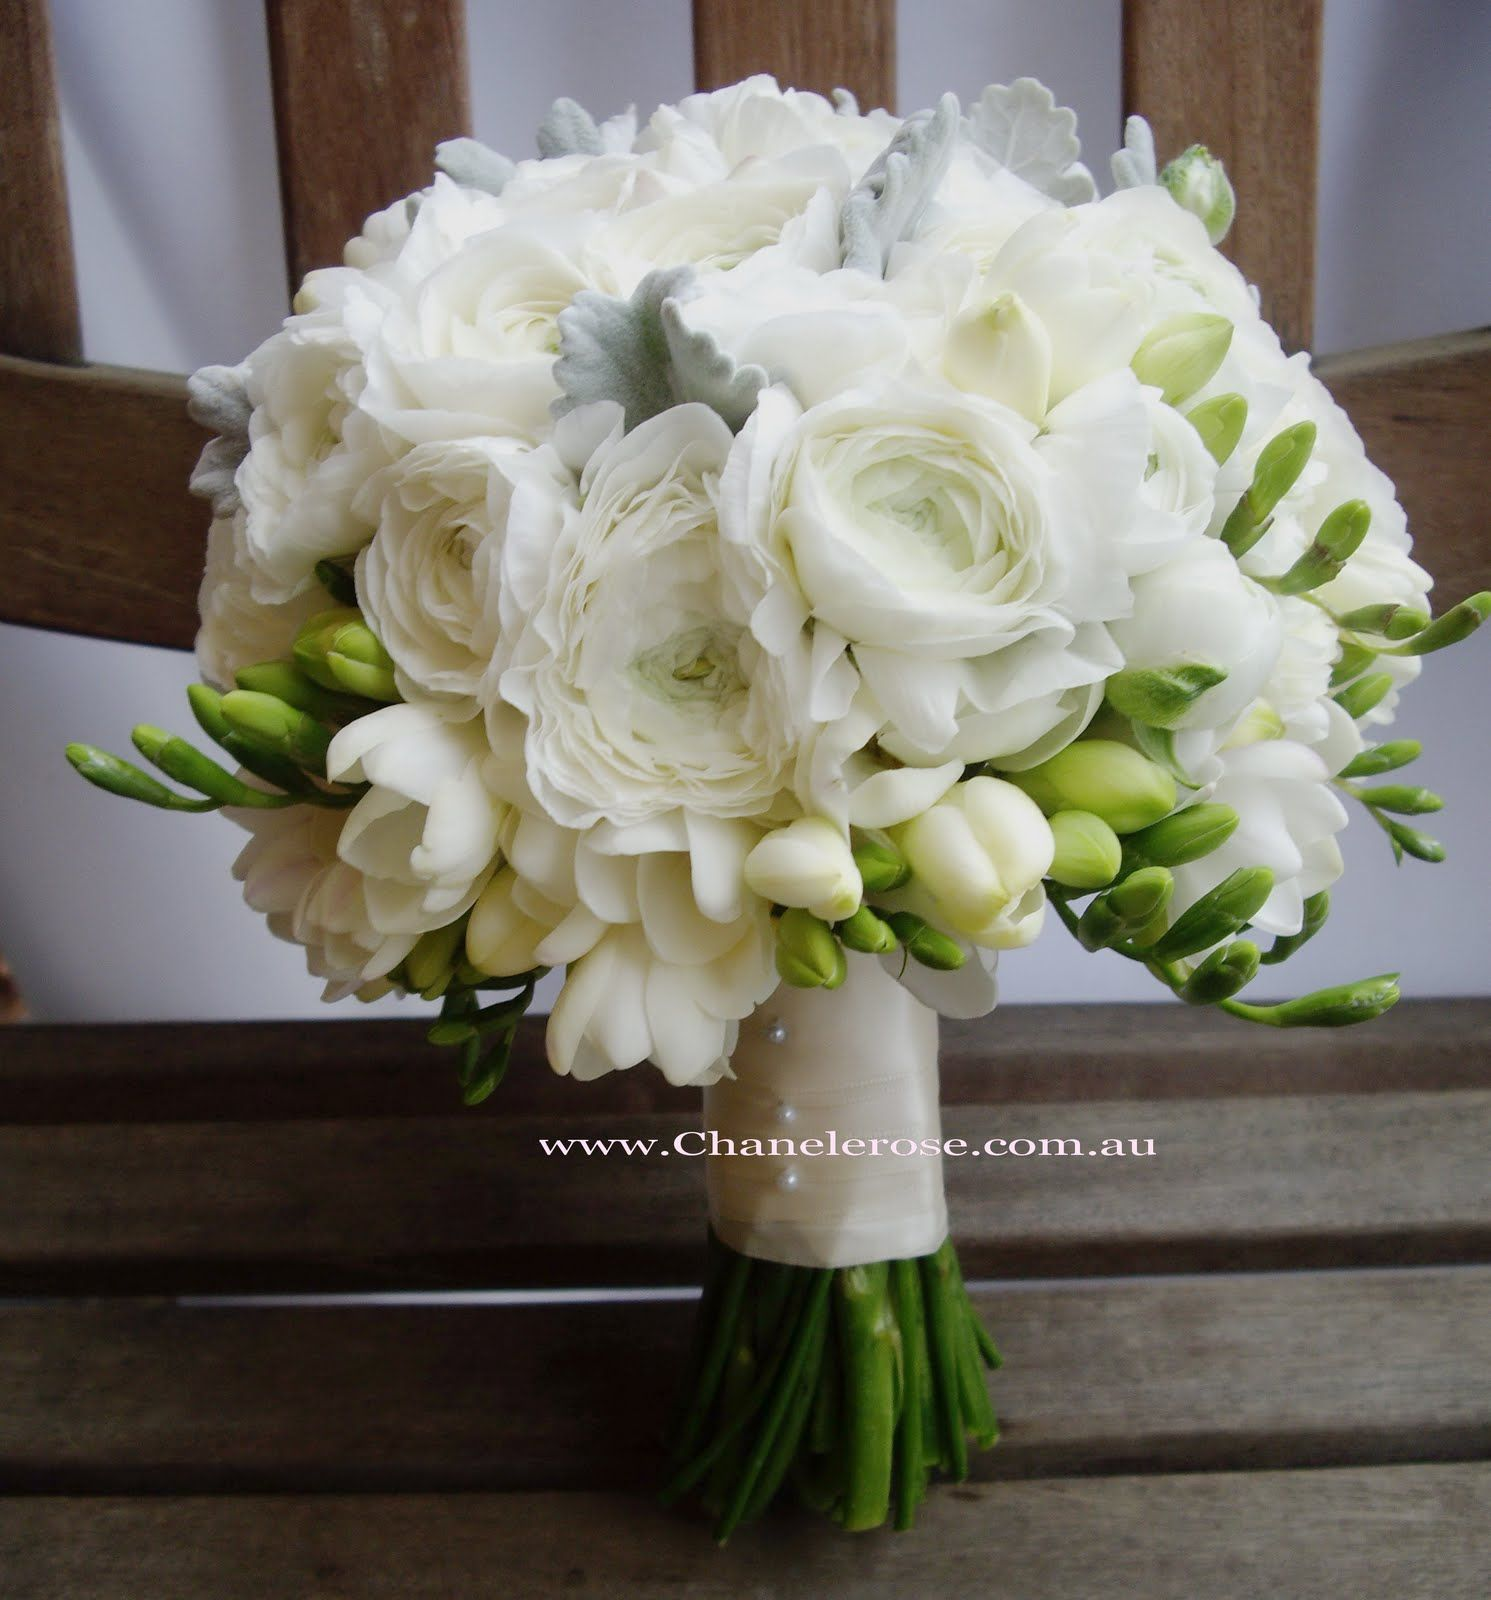 September wedding bouquets white rannunculus bridal bouquet september wedding bouquets white rannunculus bridal bouquet mightylinksfo